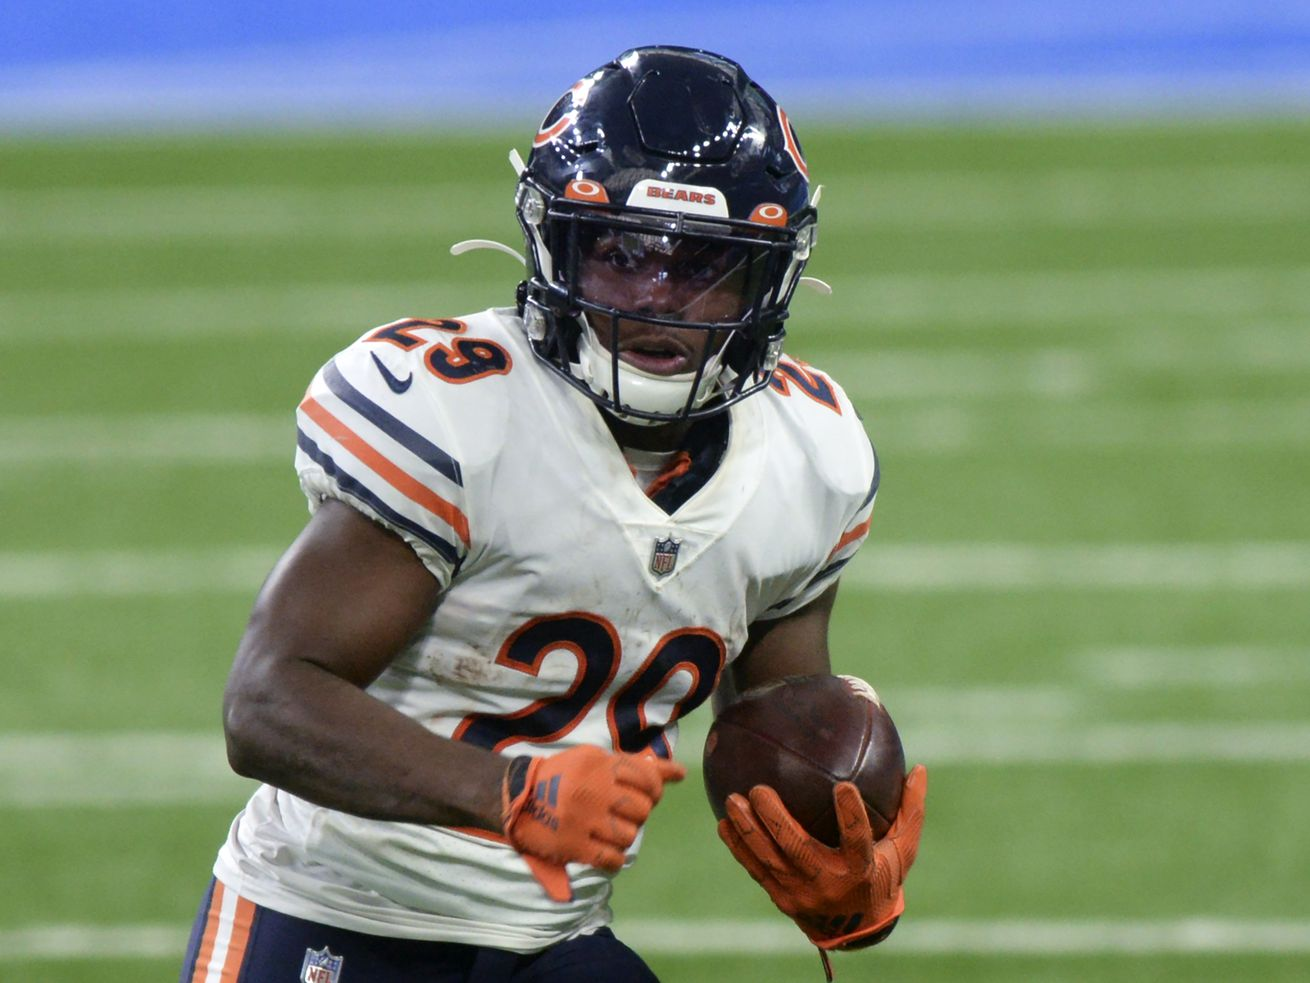 Bears RB Tarik Cohen out to show the world he can 'run people over'